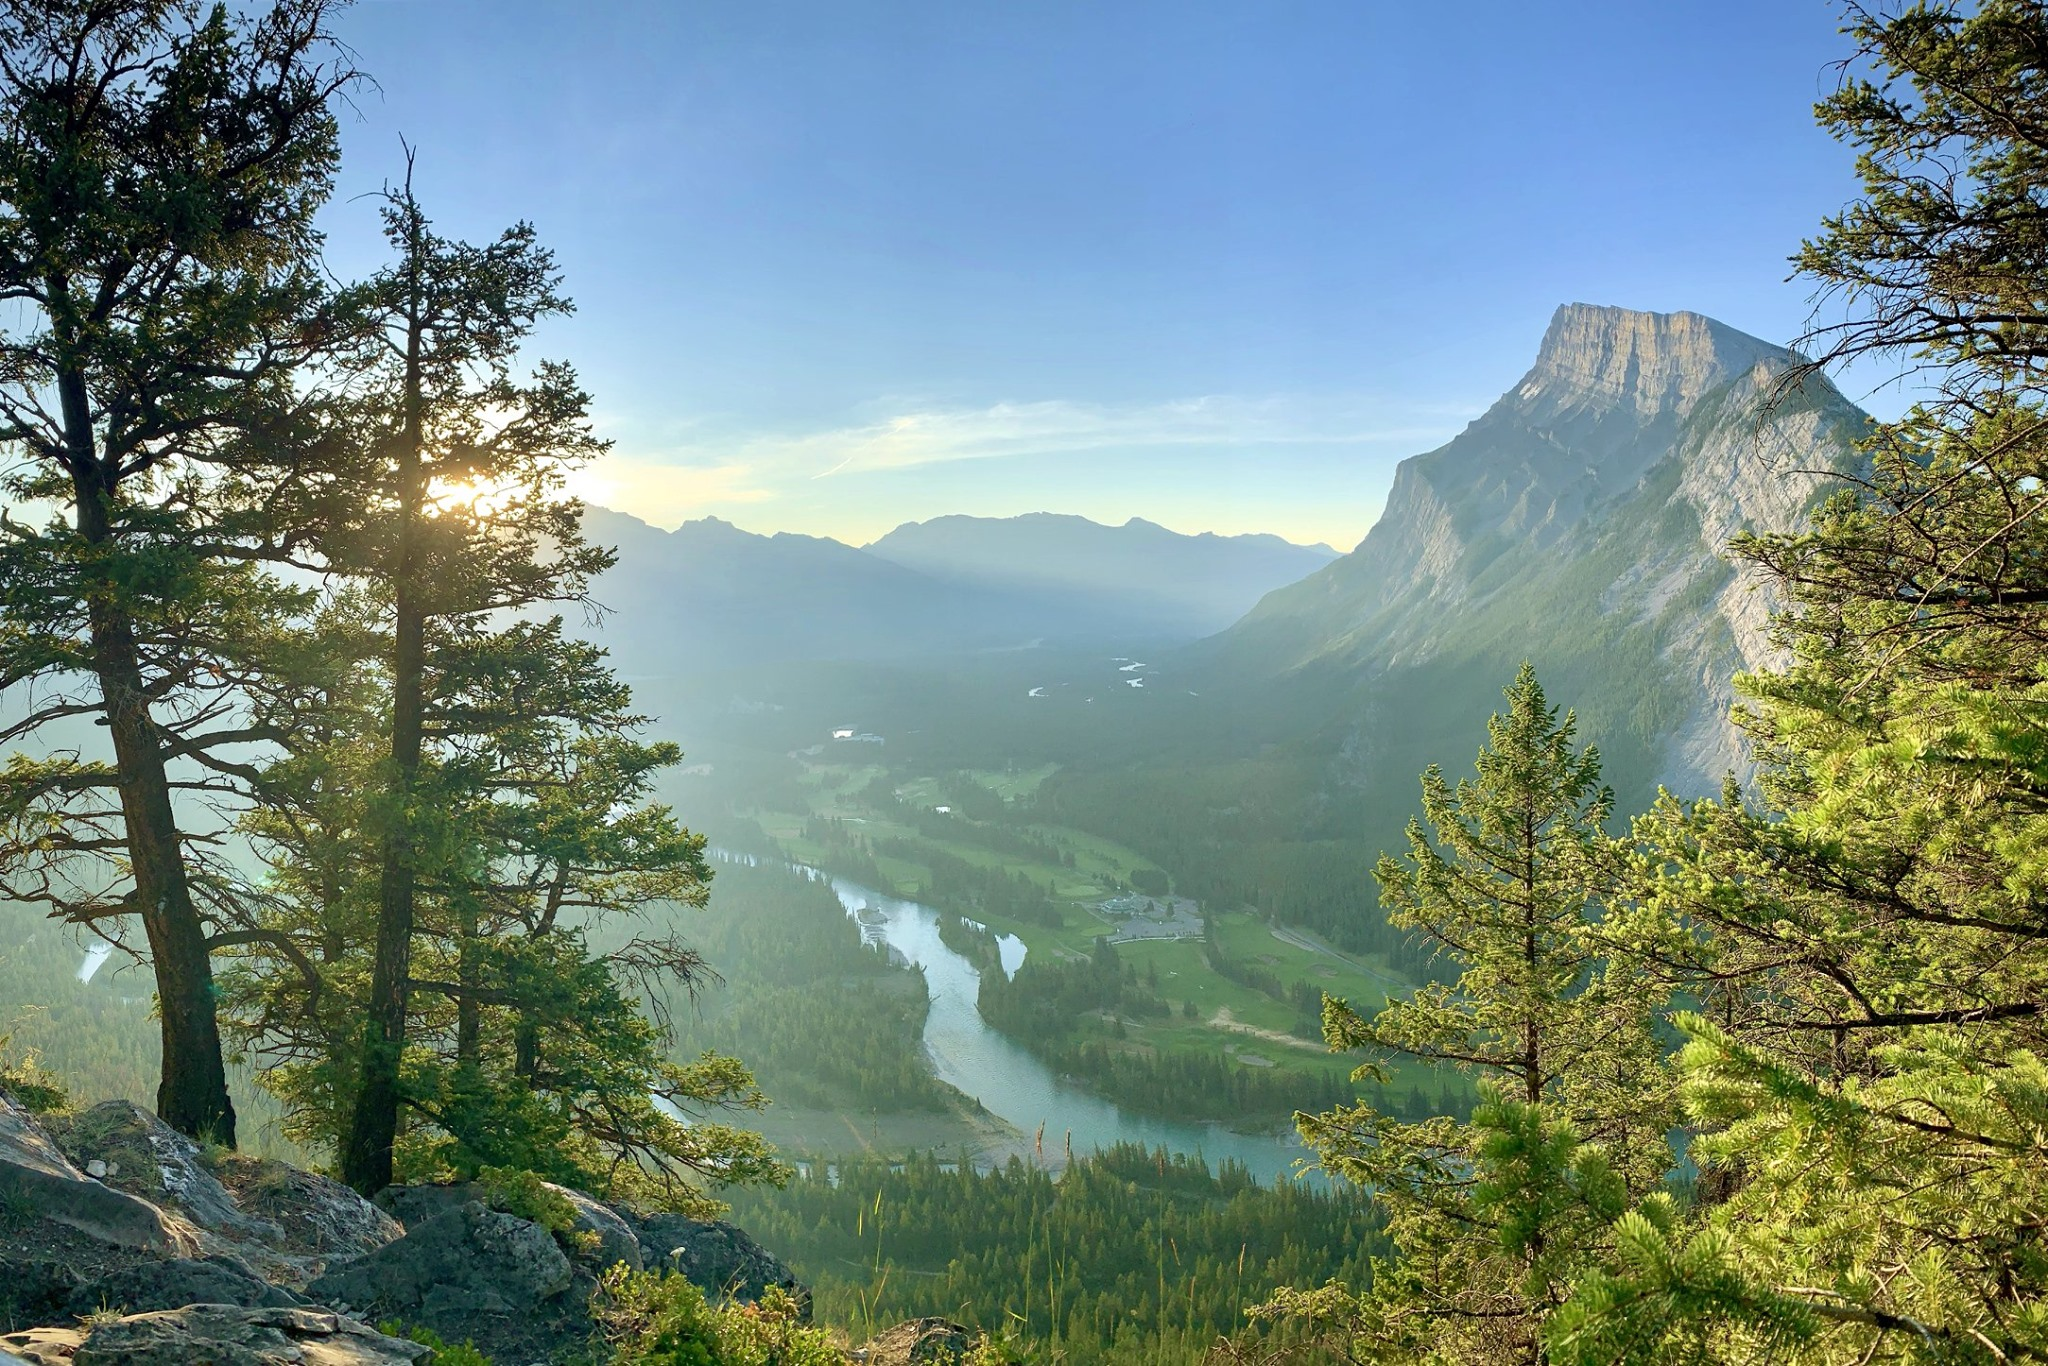 Top of Tunnel Mountain, Banff National Park